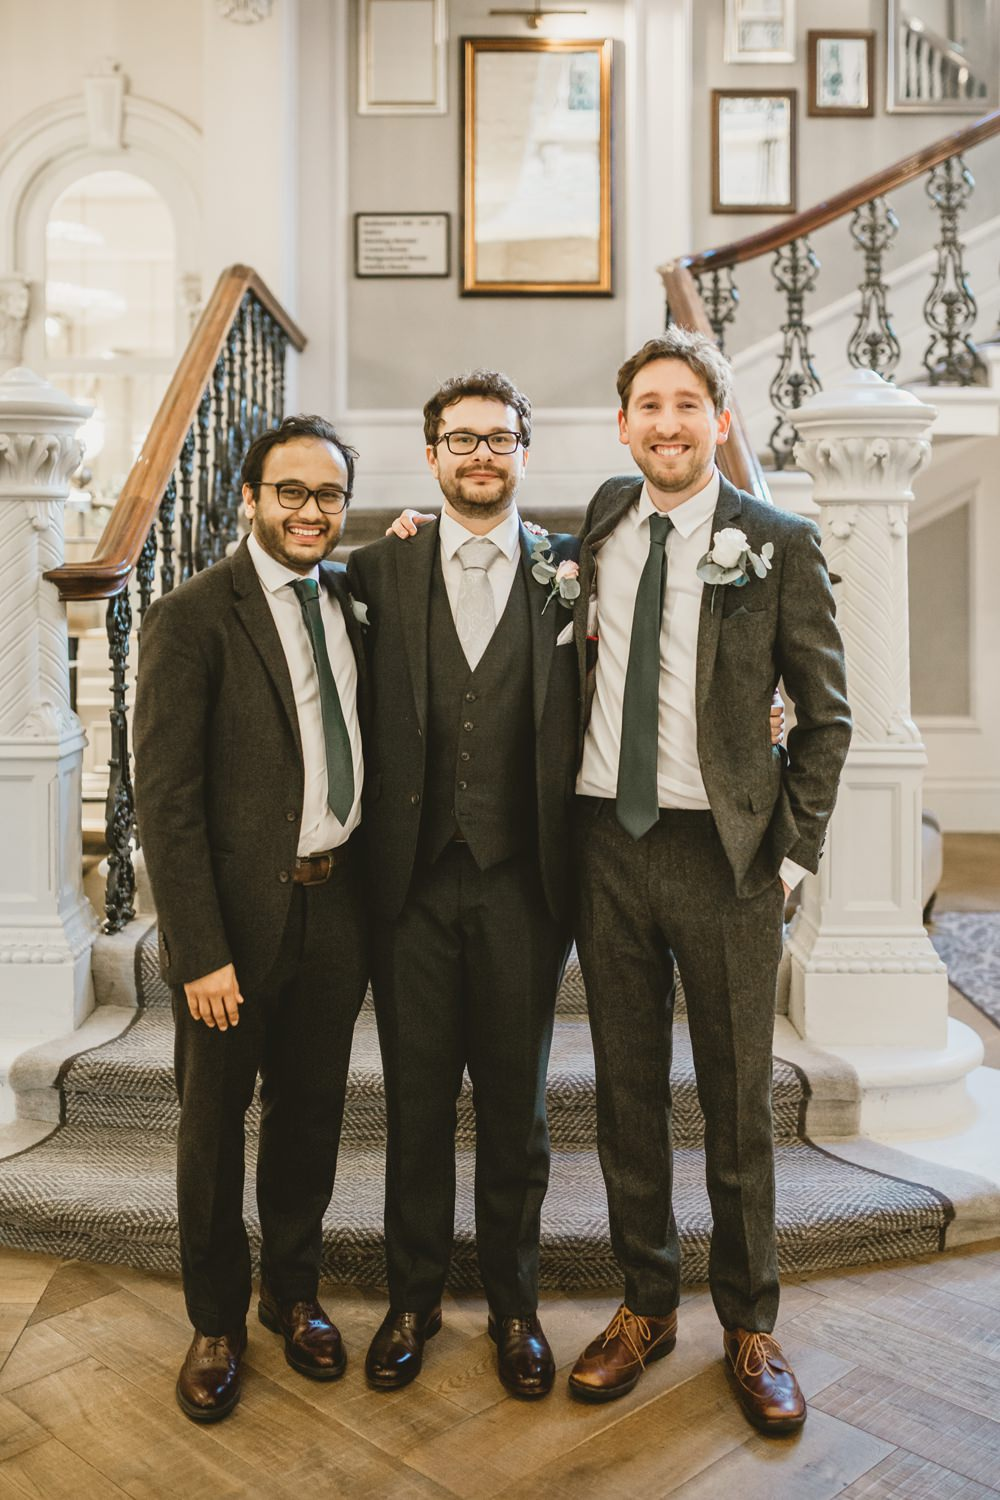 Groom Groomsmen Suits York Minster Wedding Amy Lou Photography